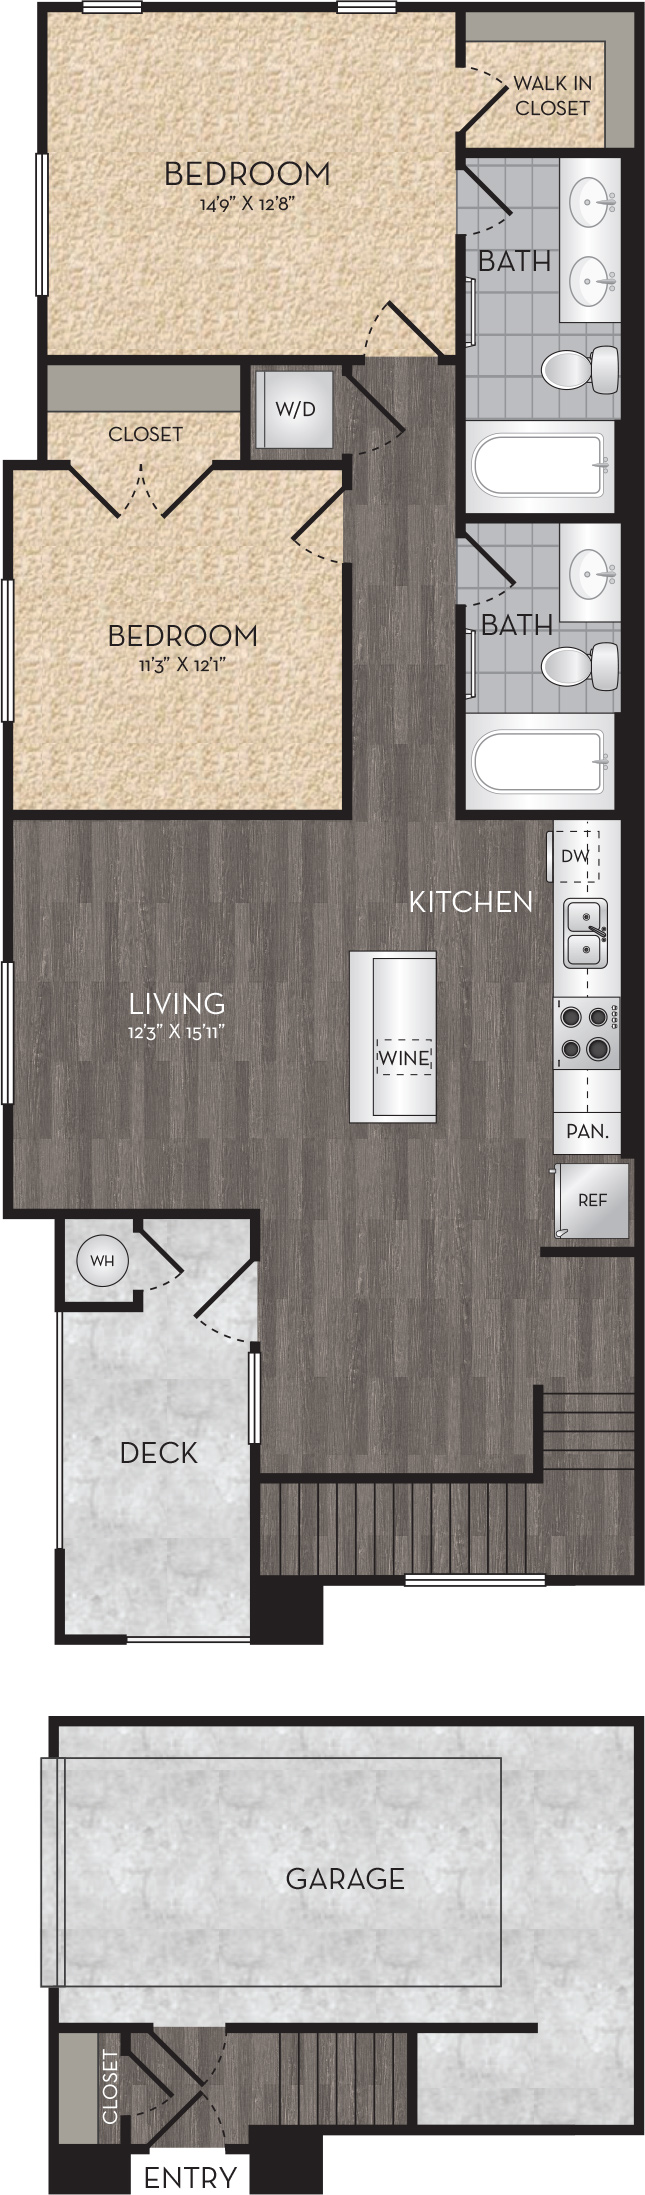 Plan B5 - 2 Bedroom, 2 Bath Floor Plan